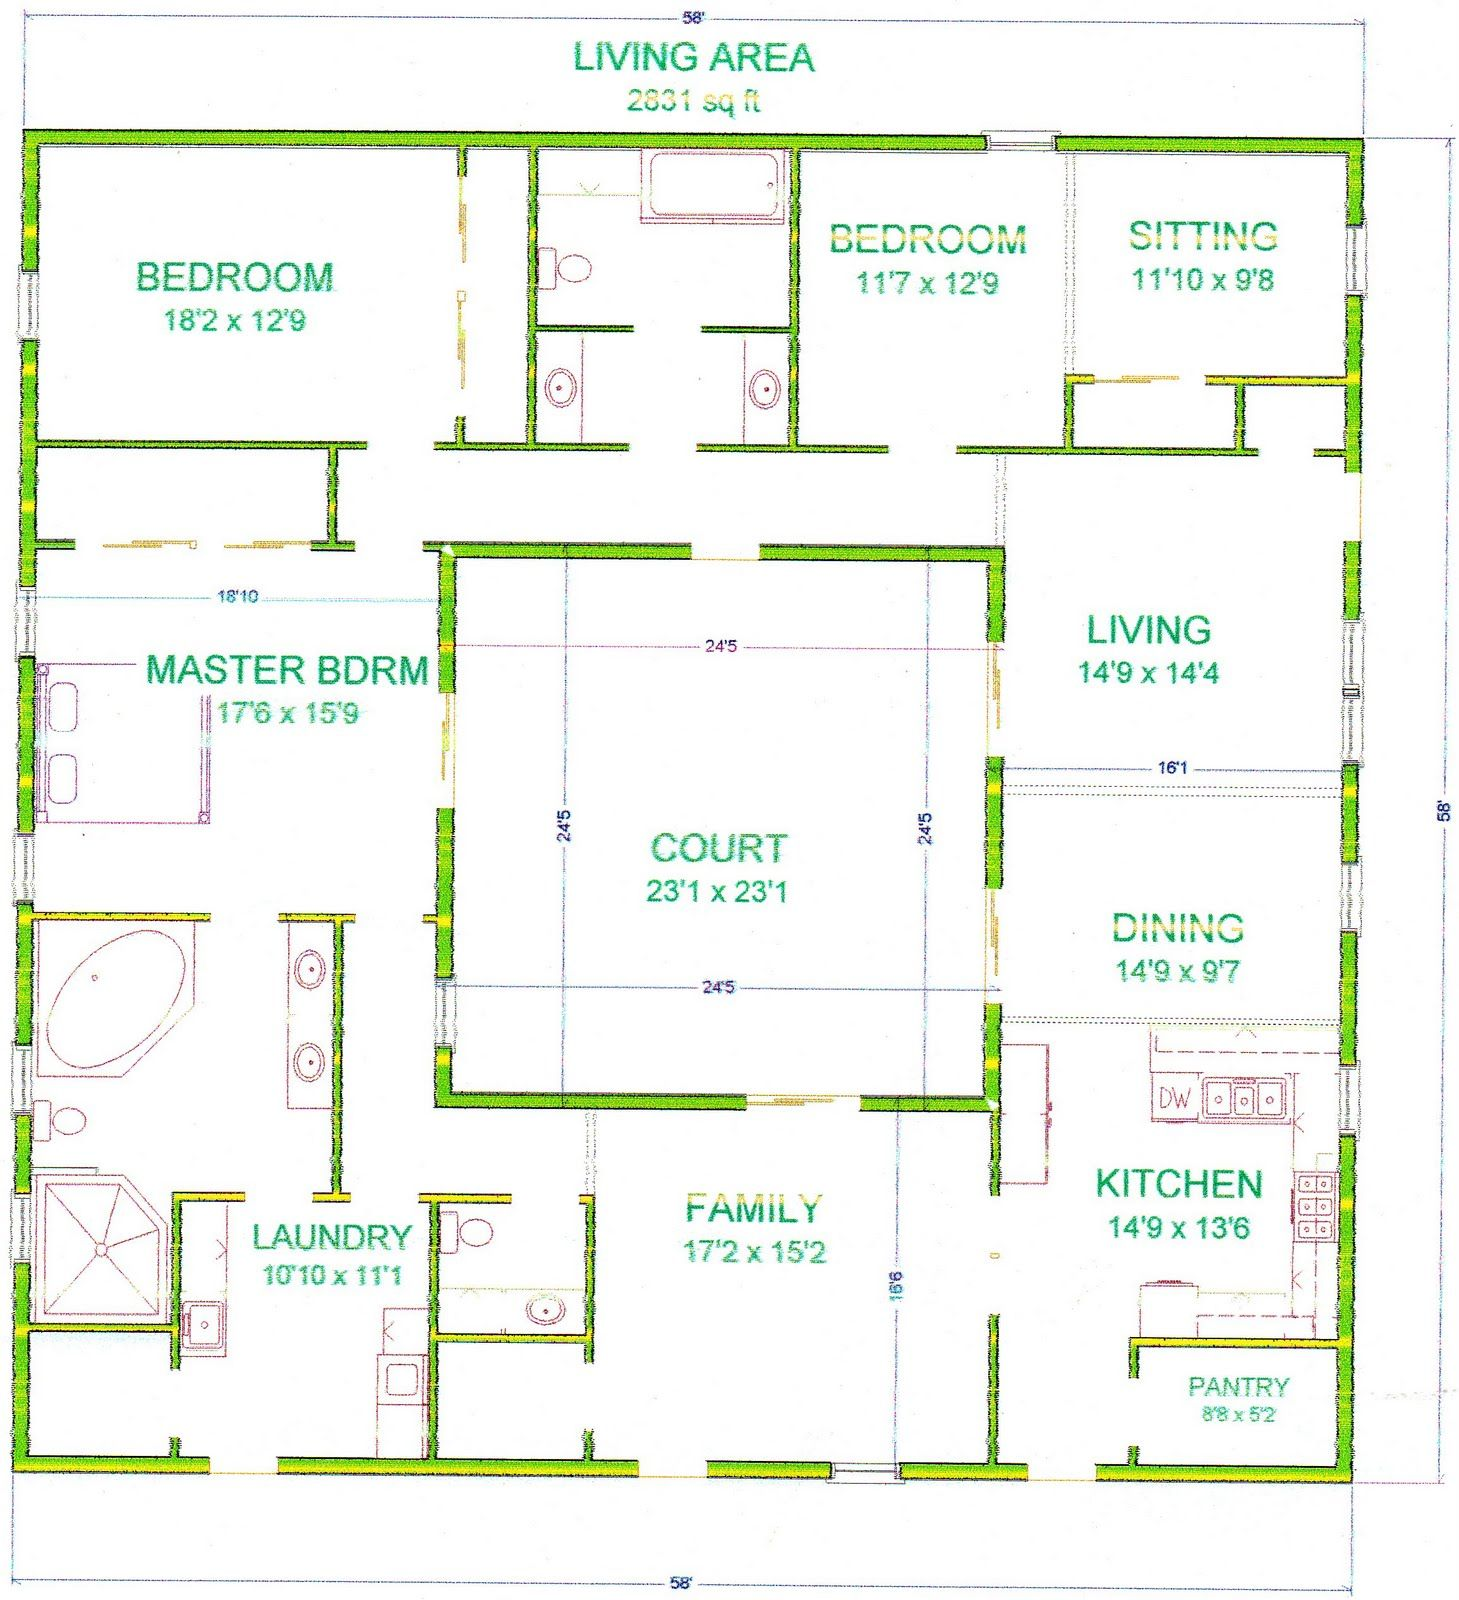 Center courtyard house plans with 2831 square feet this is one of my bigger houses i chose to - Calculating square footage of a house pict ...